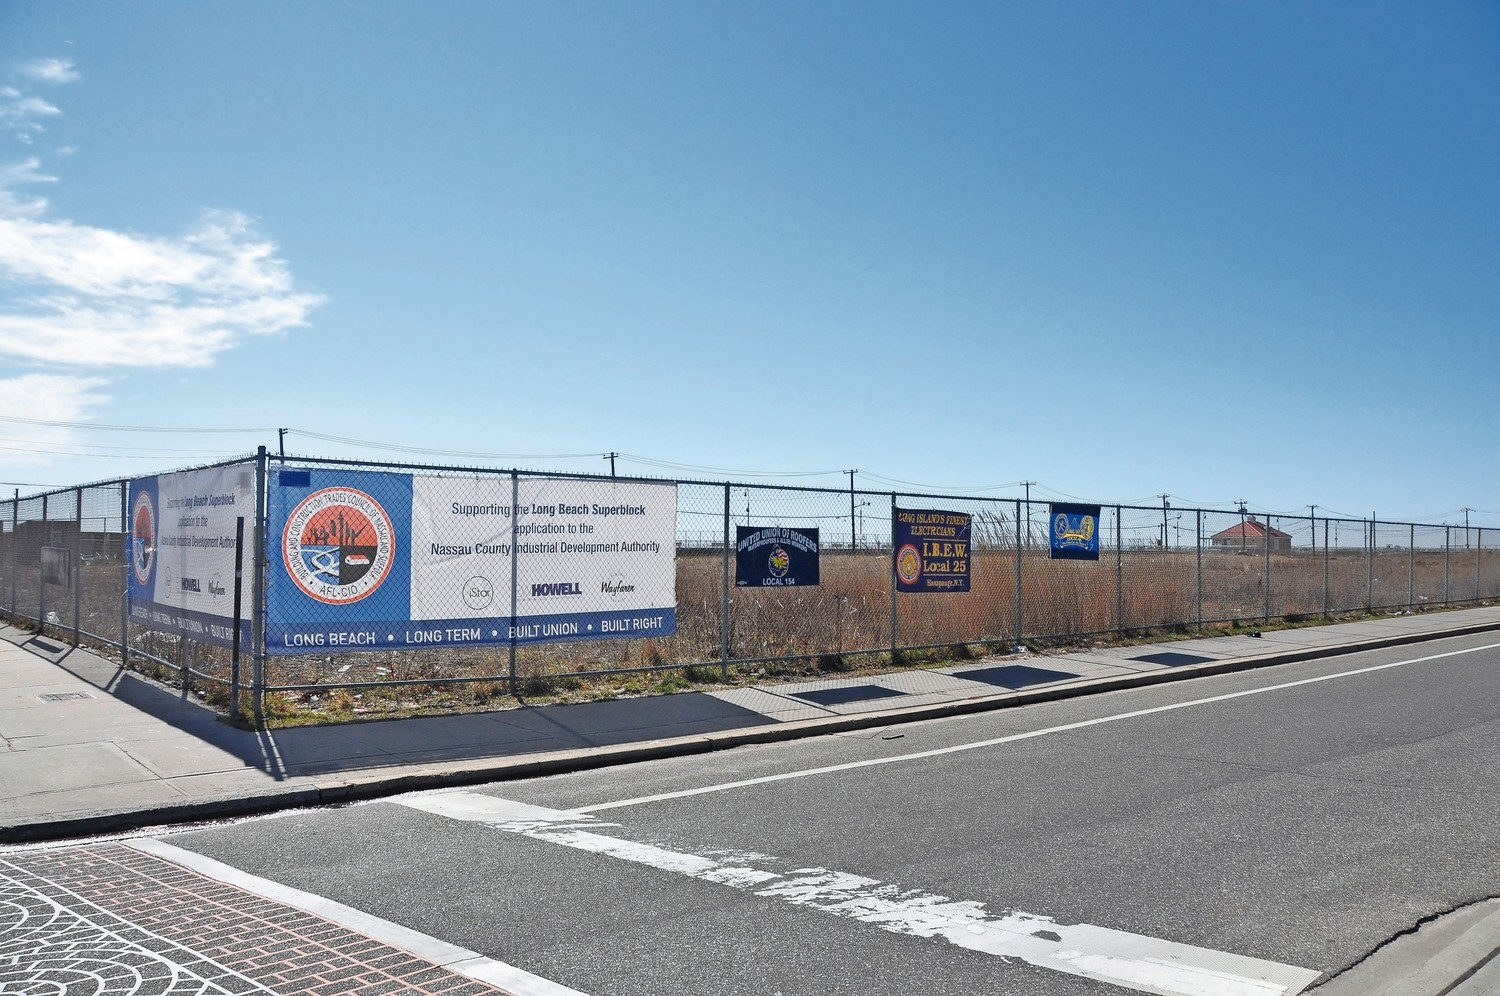 A Nassau County State Supreme Court judge ordered the city's Zoning Board of Appeals on Monday to hold a public hearing to determine whether a variance and a subsequent permit issued to the developer iStar to build two luxury apartment towers on the Superblock were still valid.